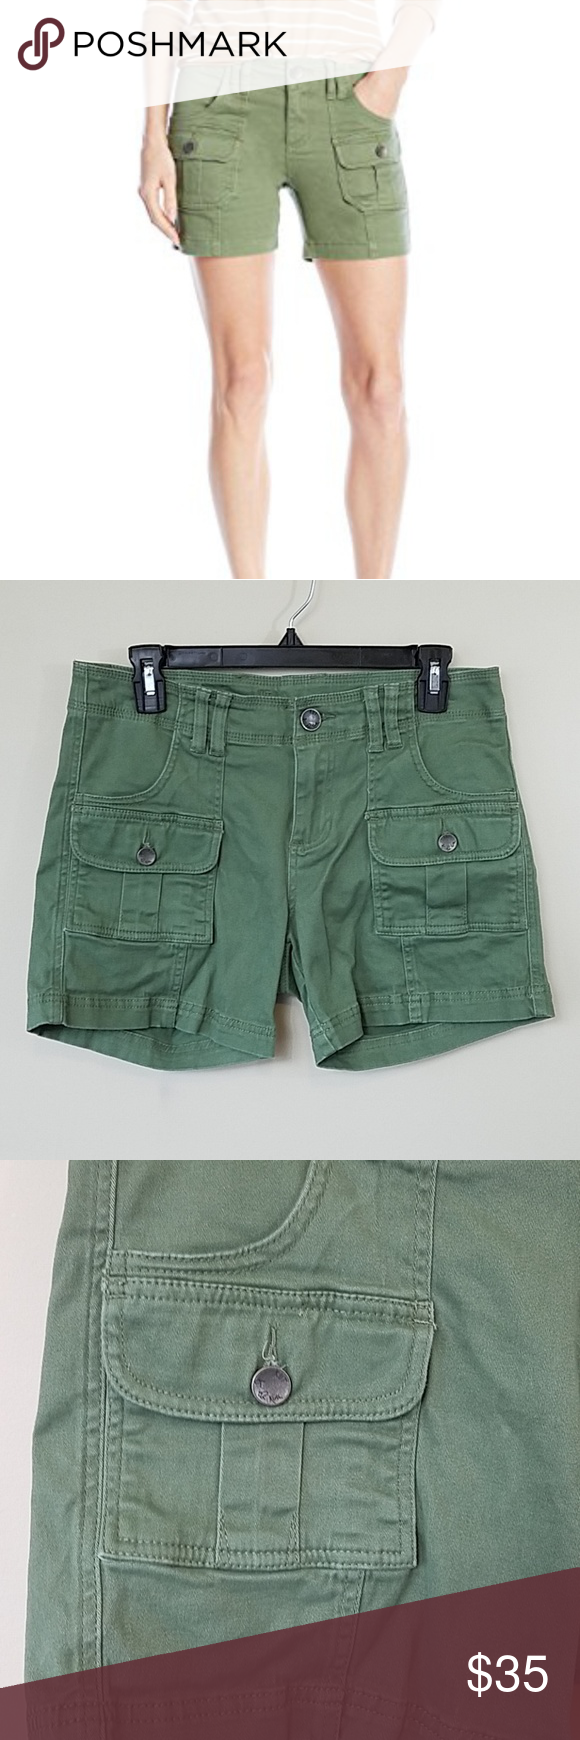 0f7cd6b268 Kut From The Kloth Elliott Cargo Shorts Kut from the Kloth Elliott Cargo  Shorts from Stitch Fix. Size 4. These are a great neutral olive green color  with ...